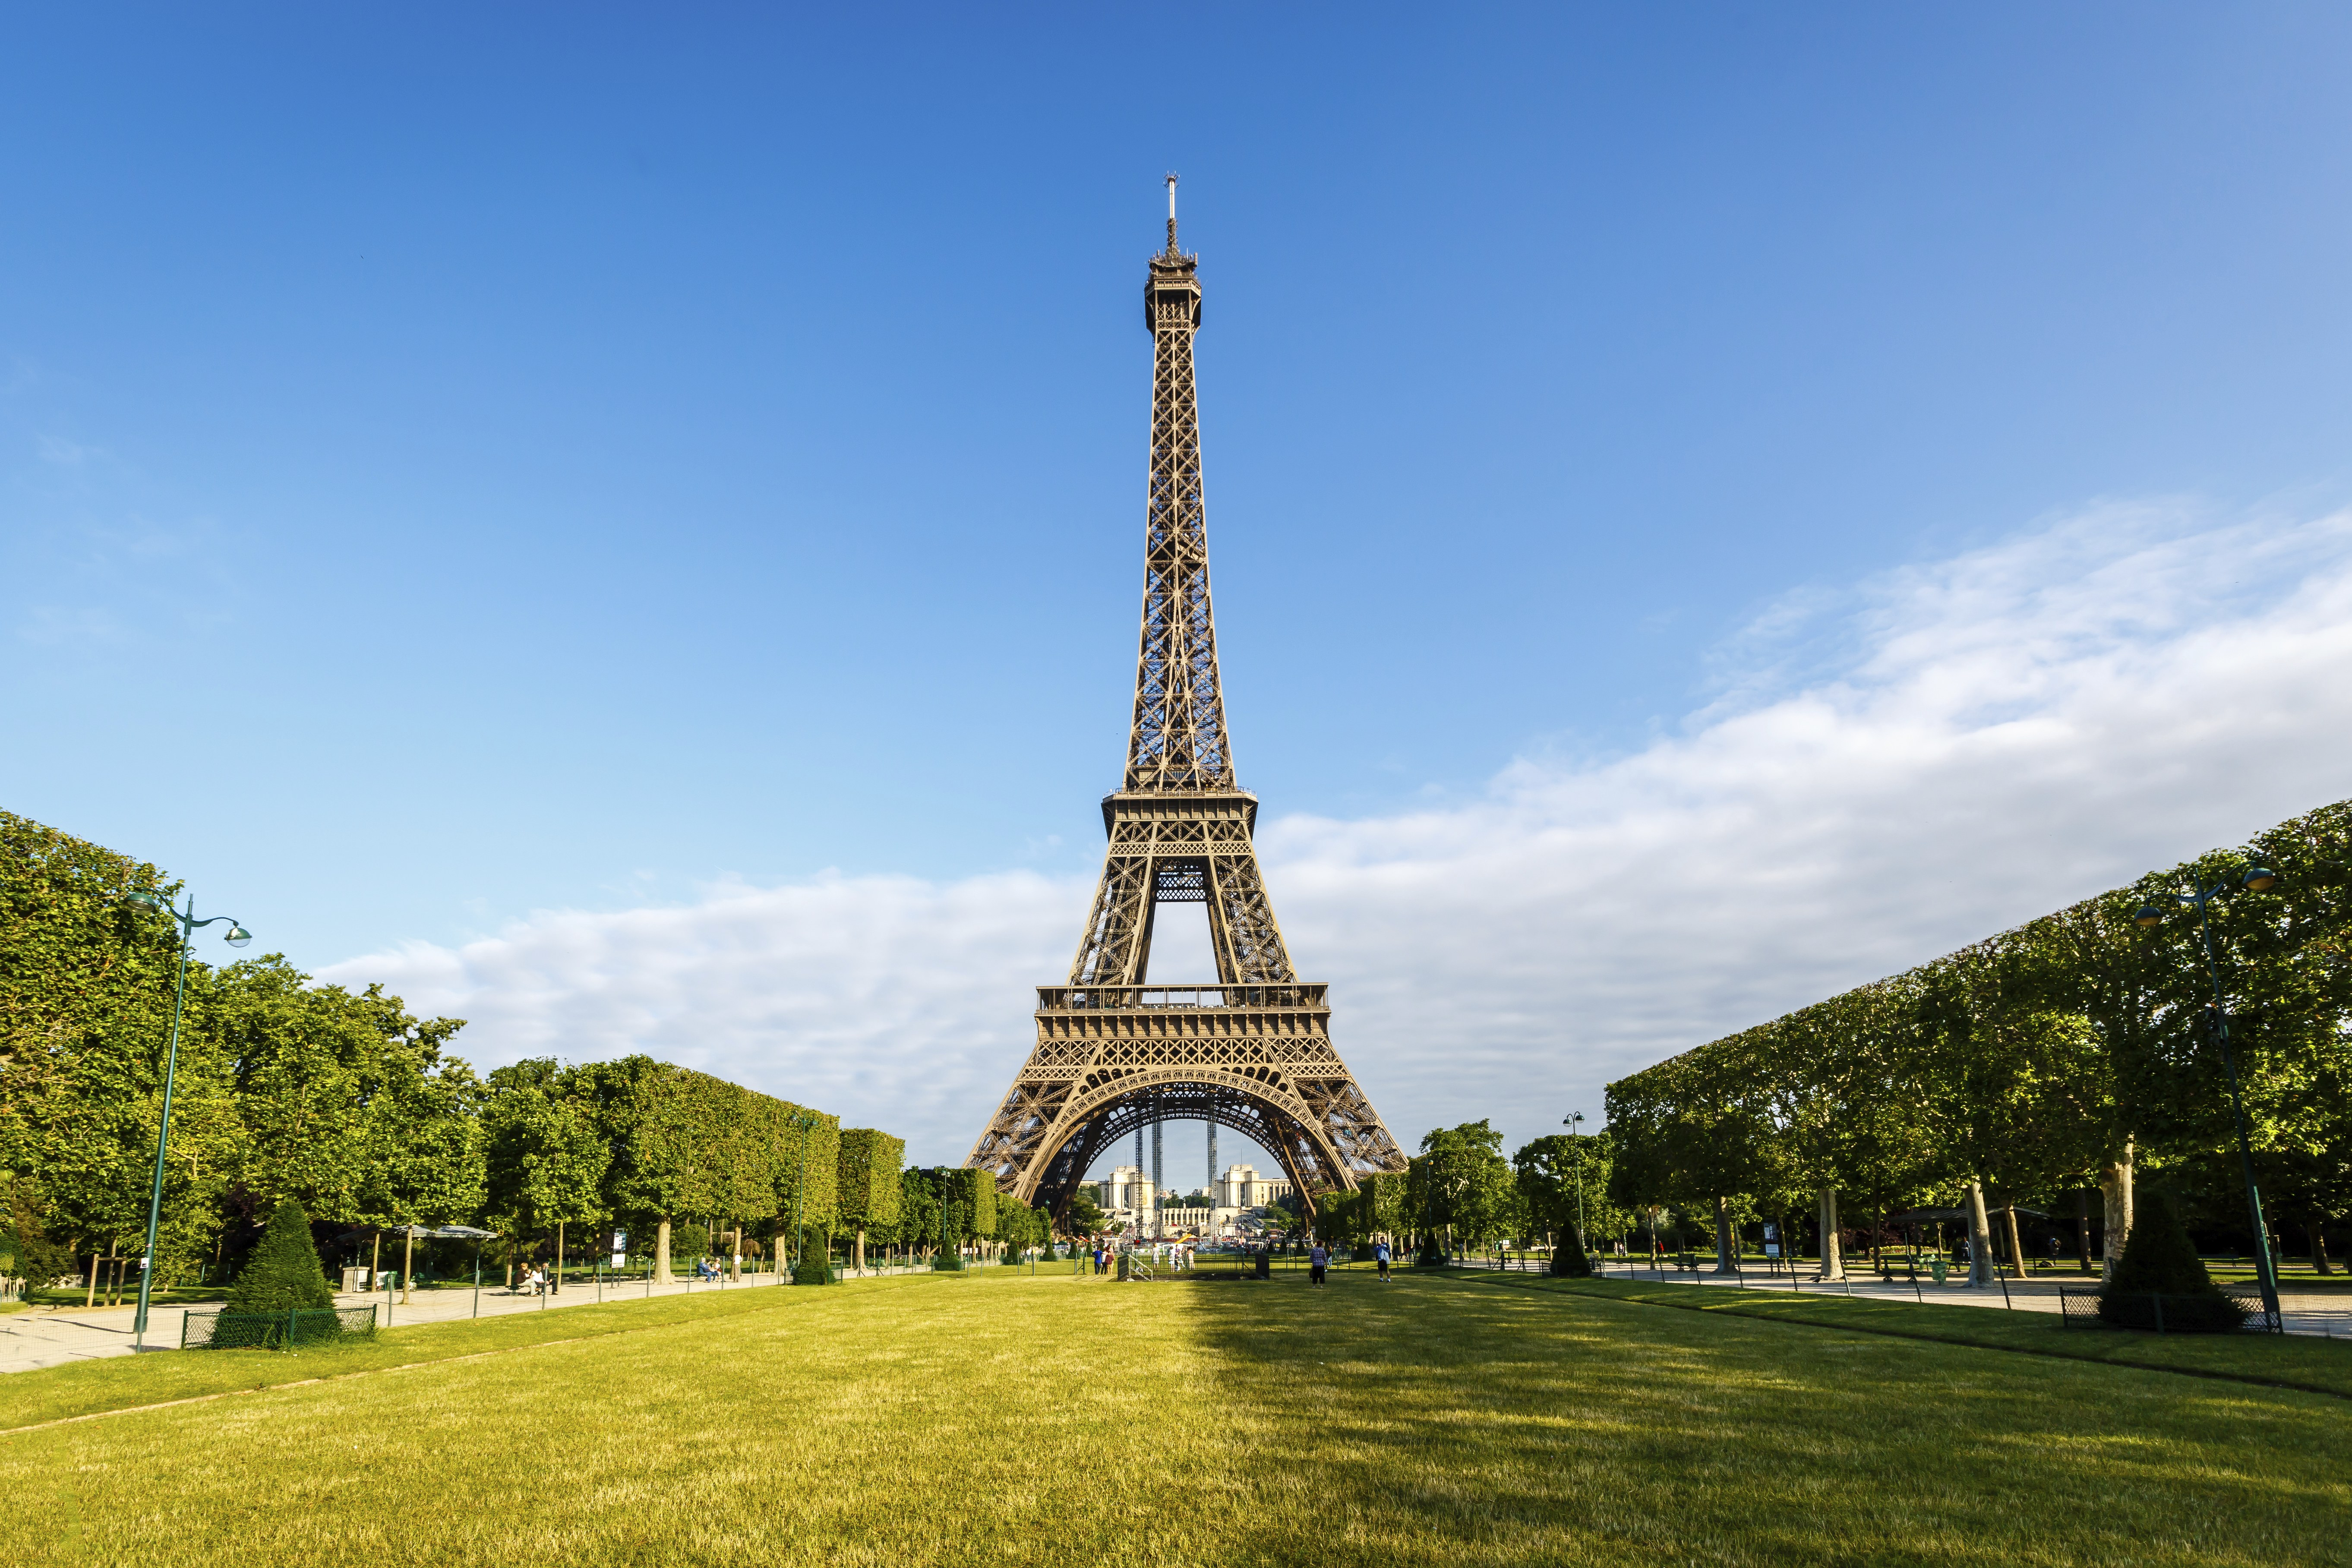 11 Eiffel Tower Facts You Didn't Know - Condé Nast Traveler